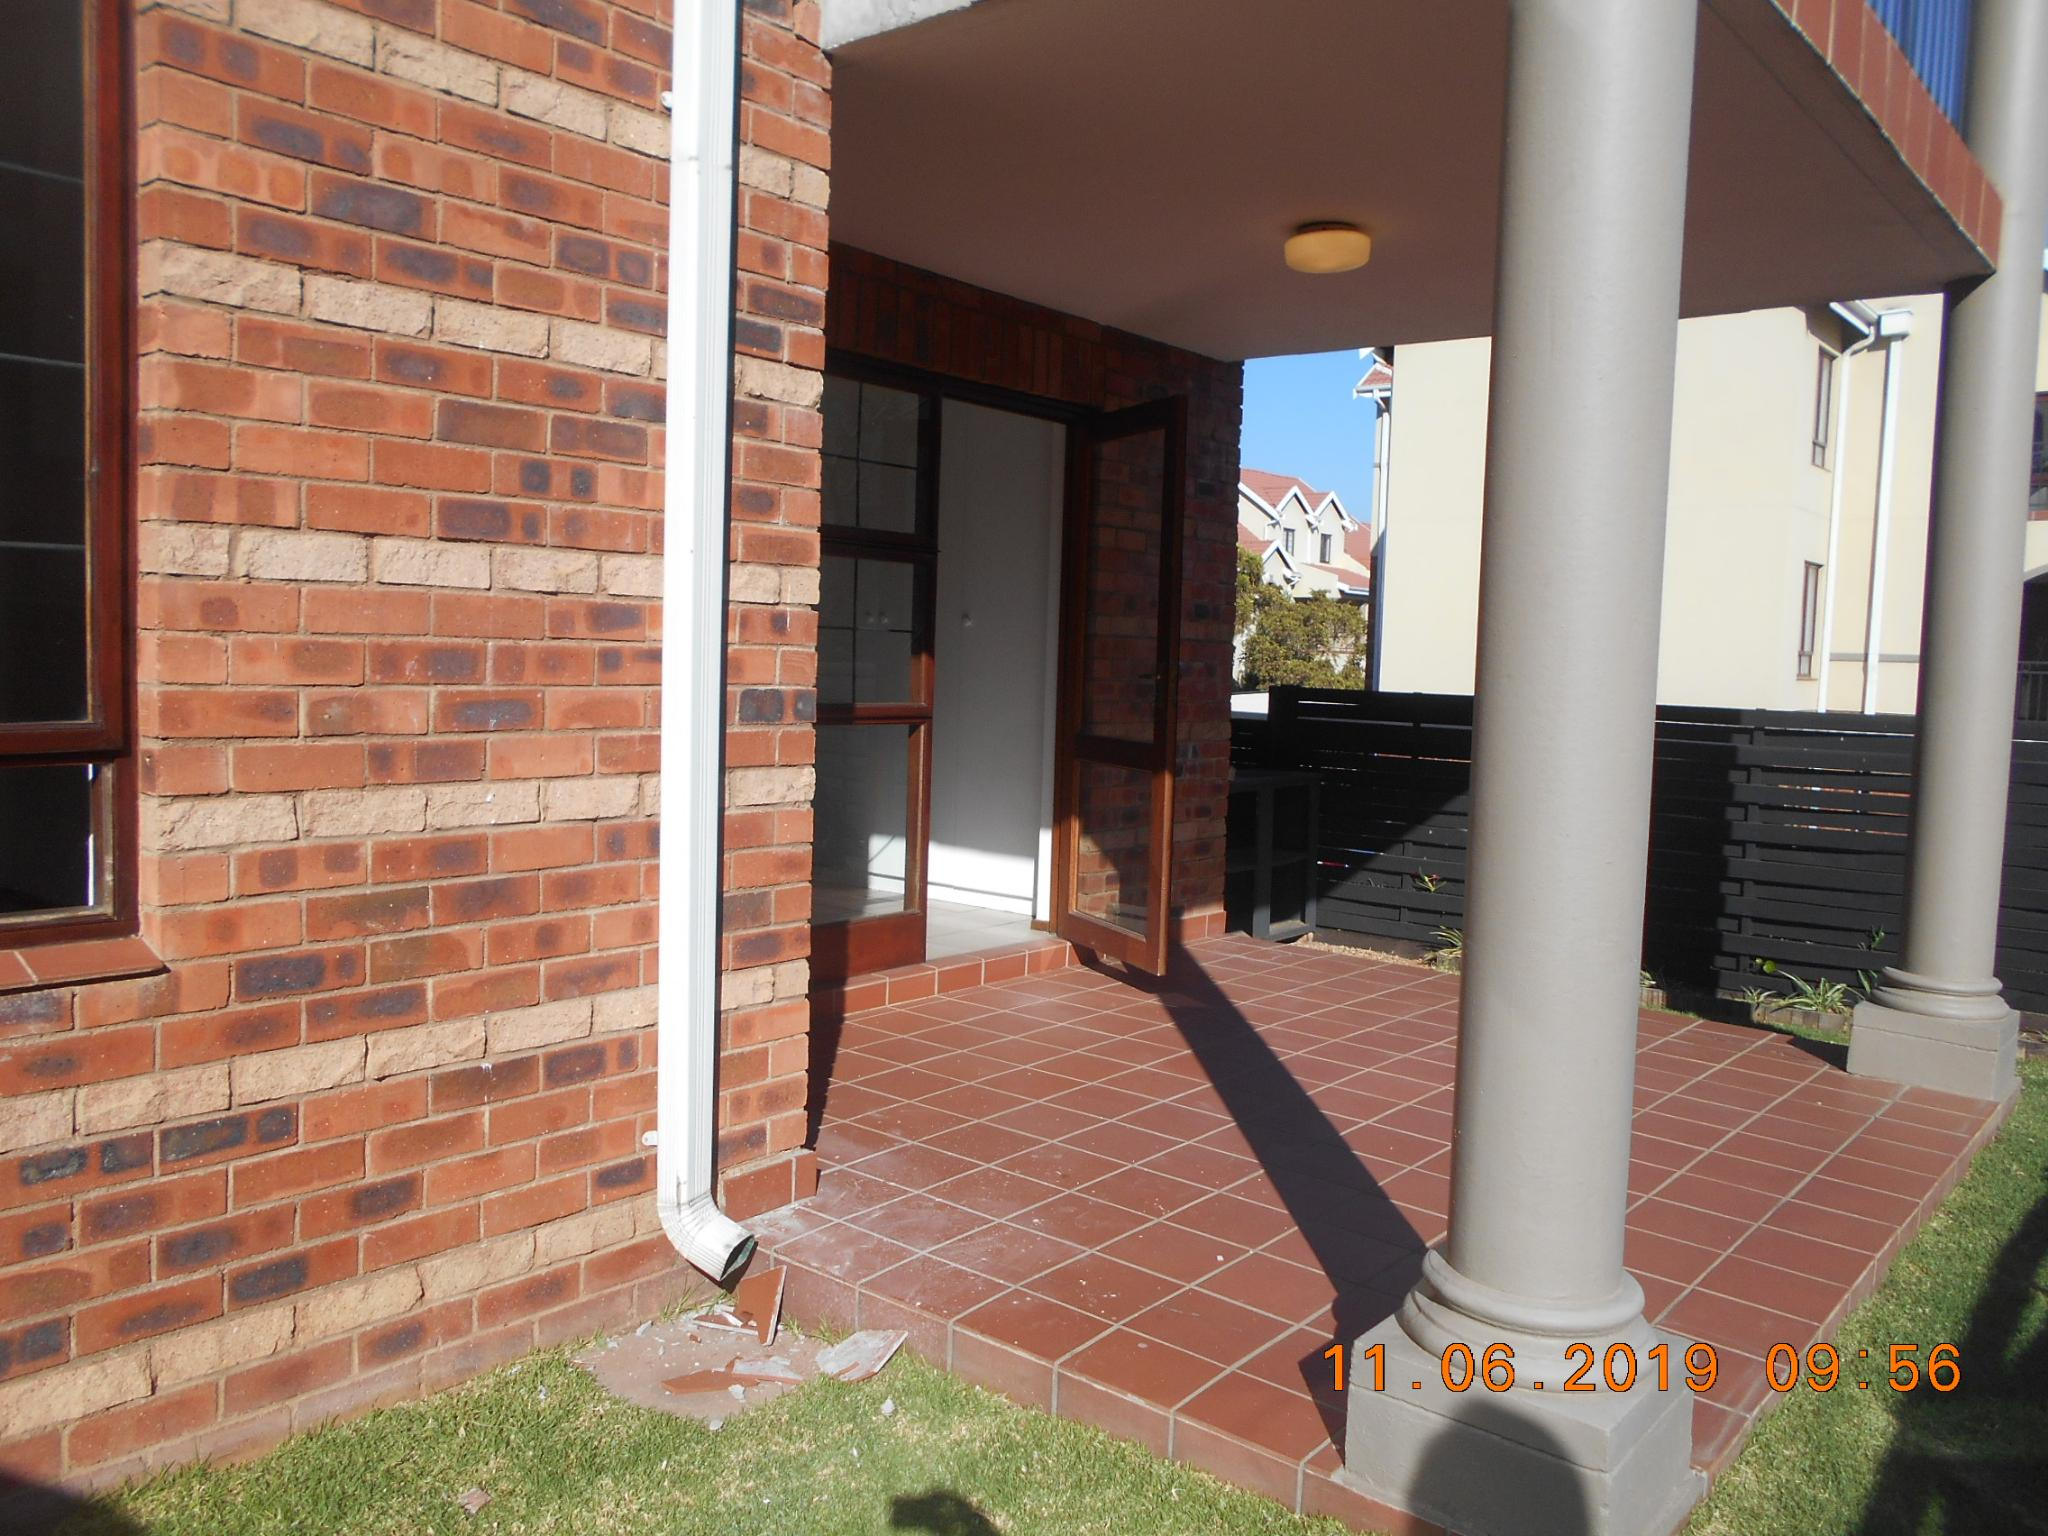 RENTAL PROPERTY ON SHOW SATURDAY 3 AUGUST 2019 FROM 8:00AM TO 8:30AM